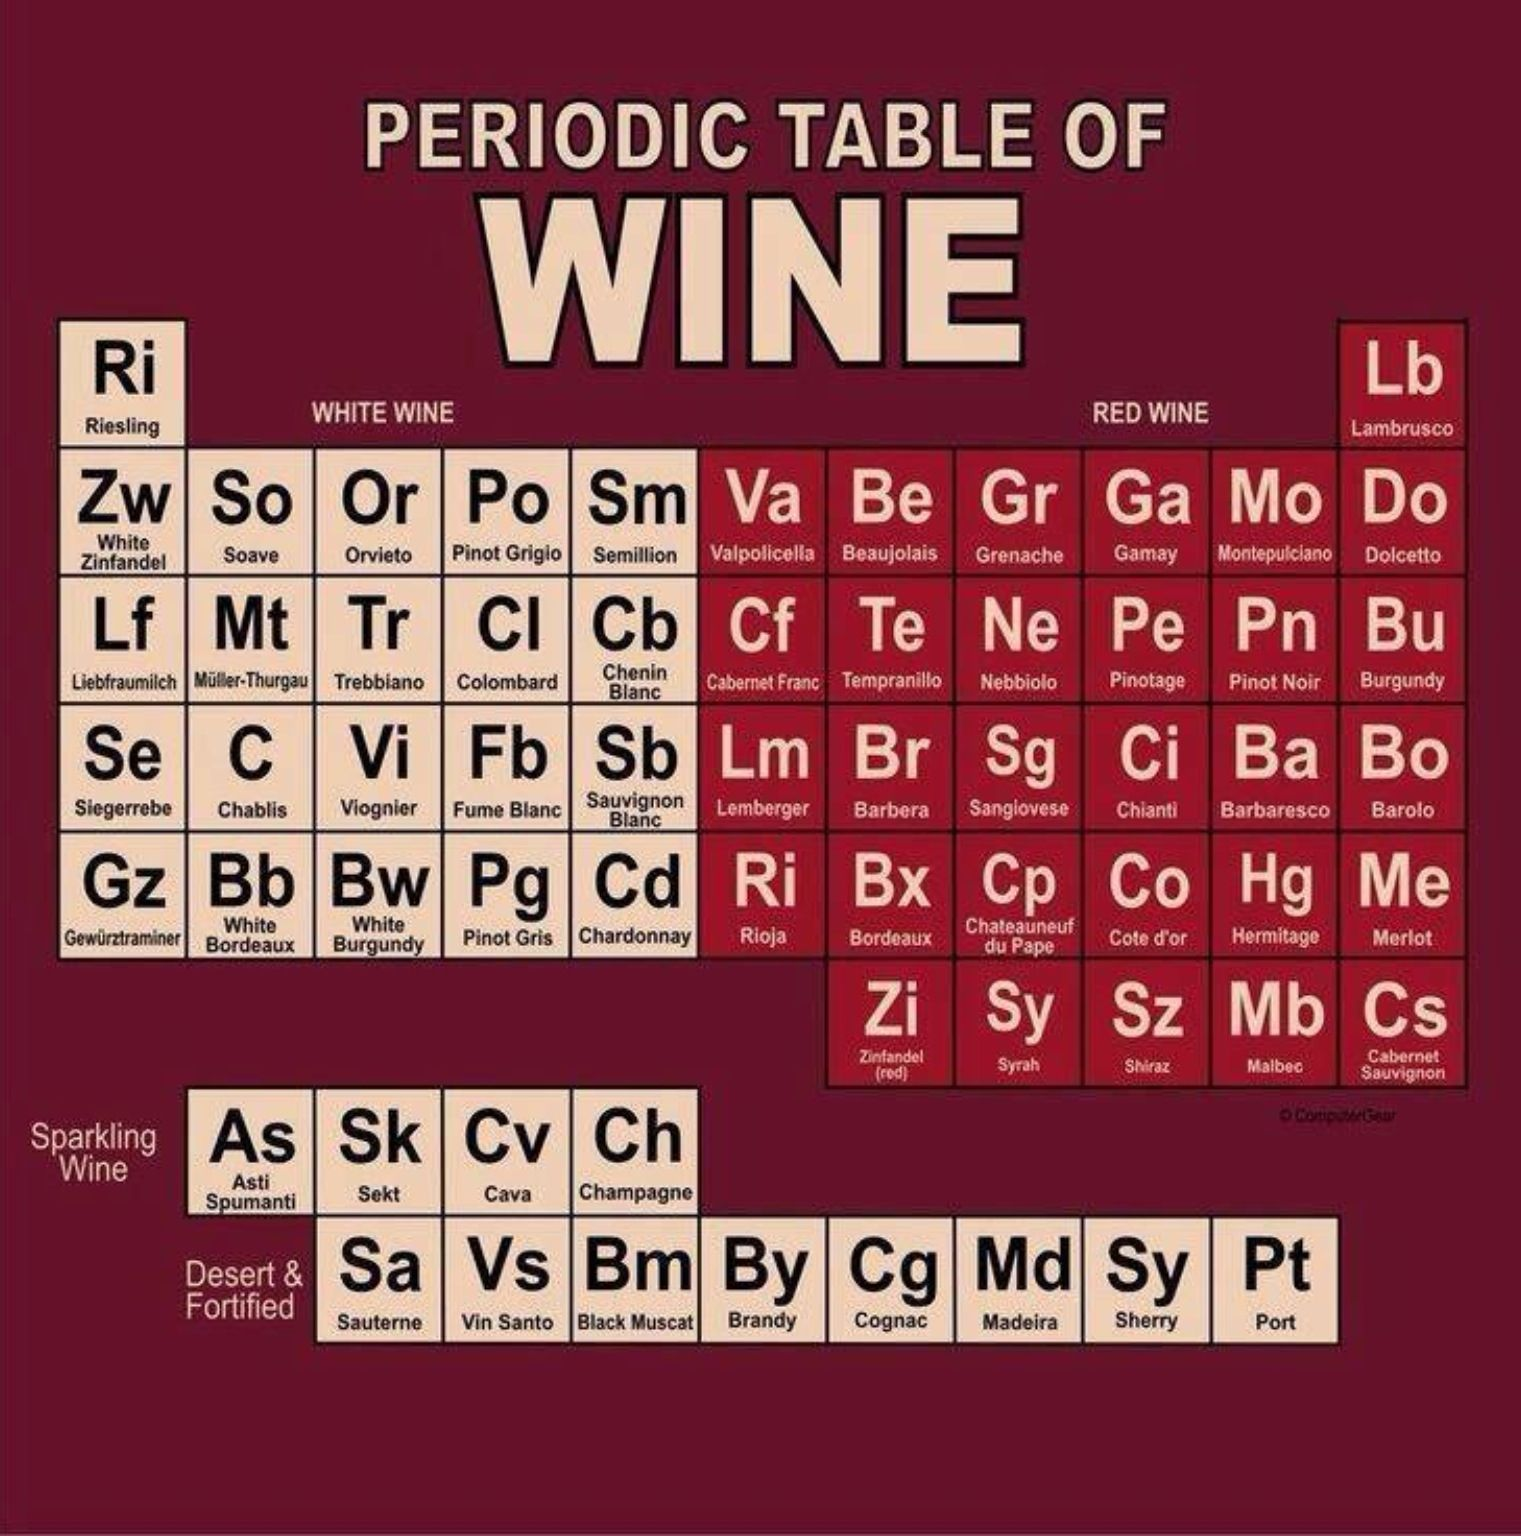 Periodic Table Of Wine Finewine Pairings Wine Humor Wine Recipes Wine Knowledge